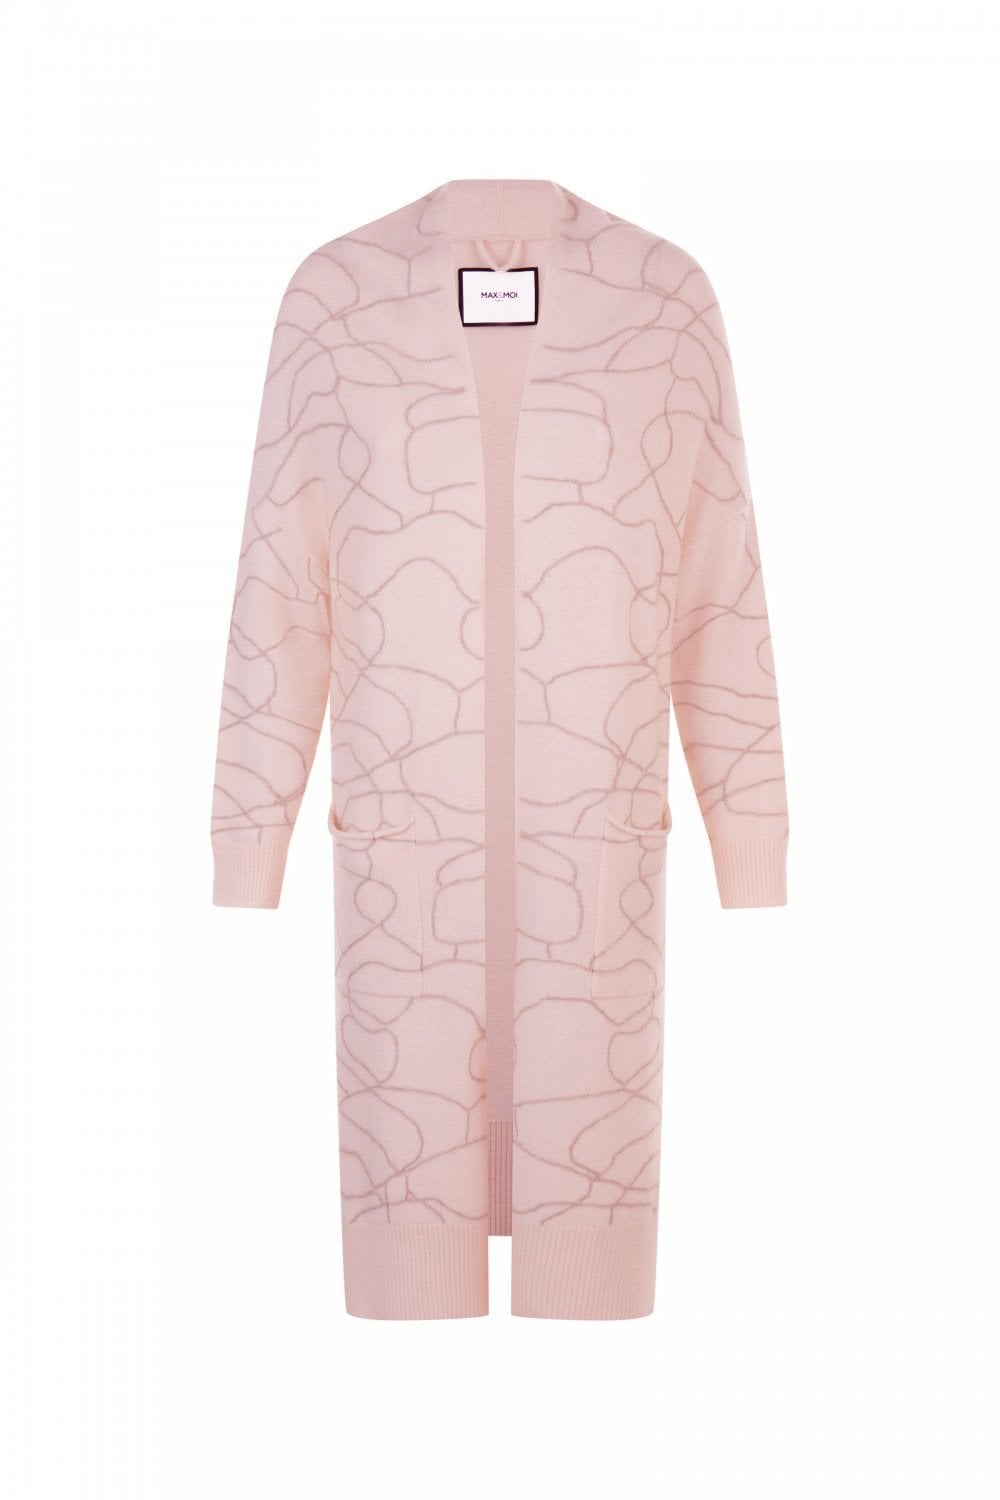 225ca94c1a5158 MAX   MOI Women s Max   Moi Samson Cardigan in Pink - WOMAN from ...